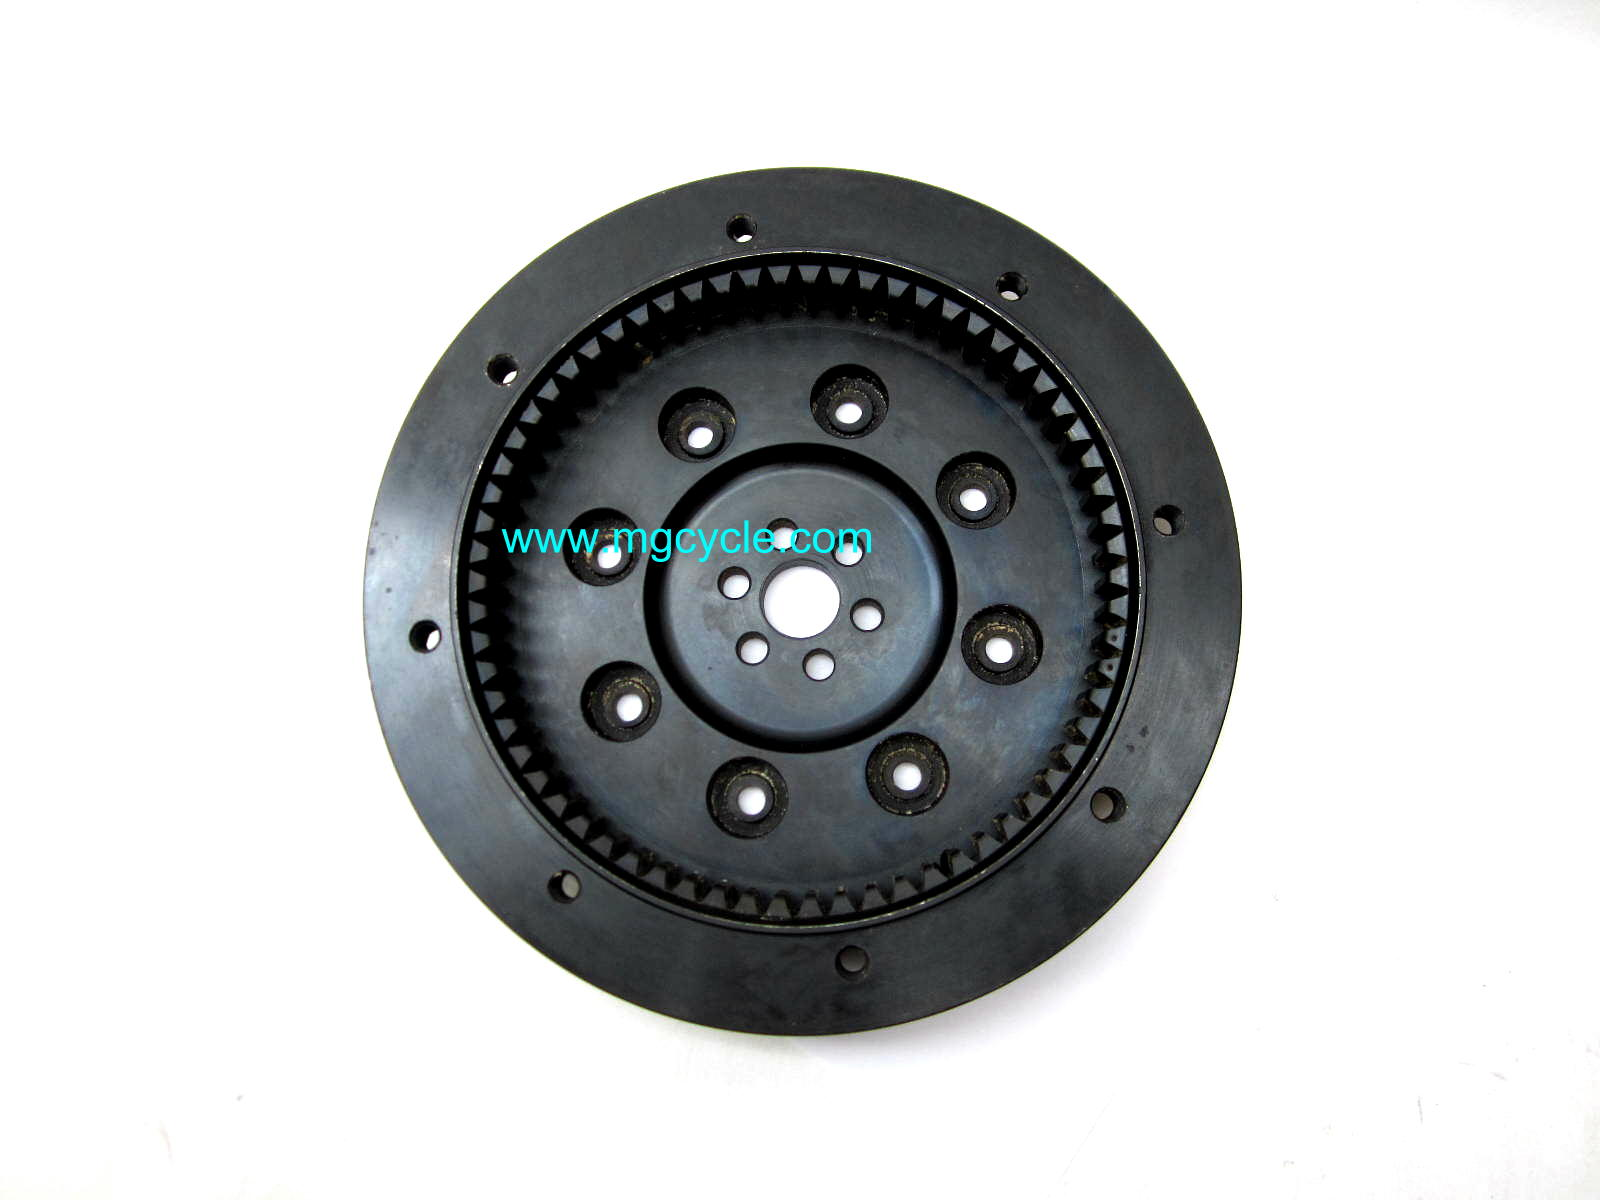 Flywheel T3, Cal2, SP1000, 1000S, 4.3 kg 9.5 pounds